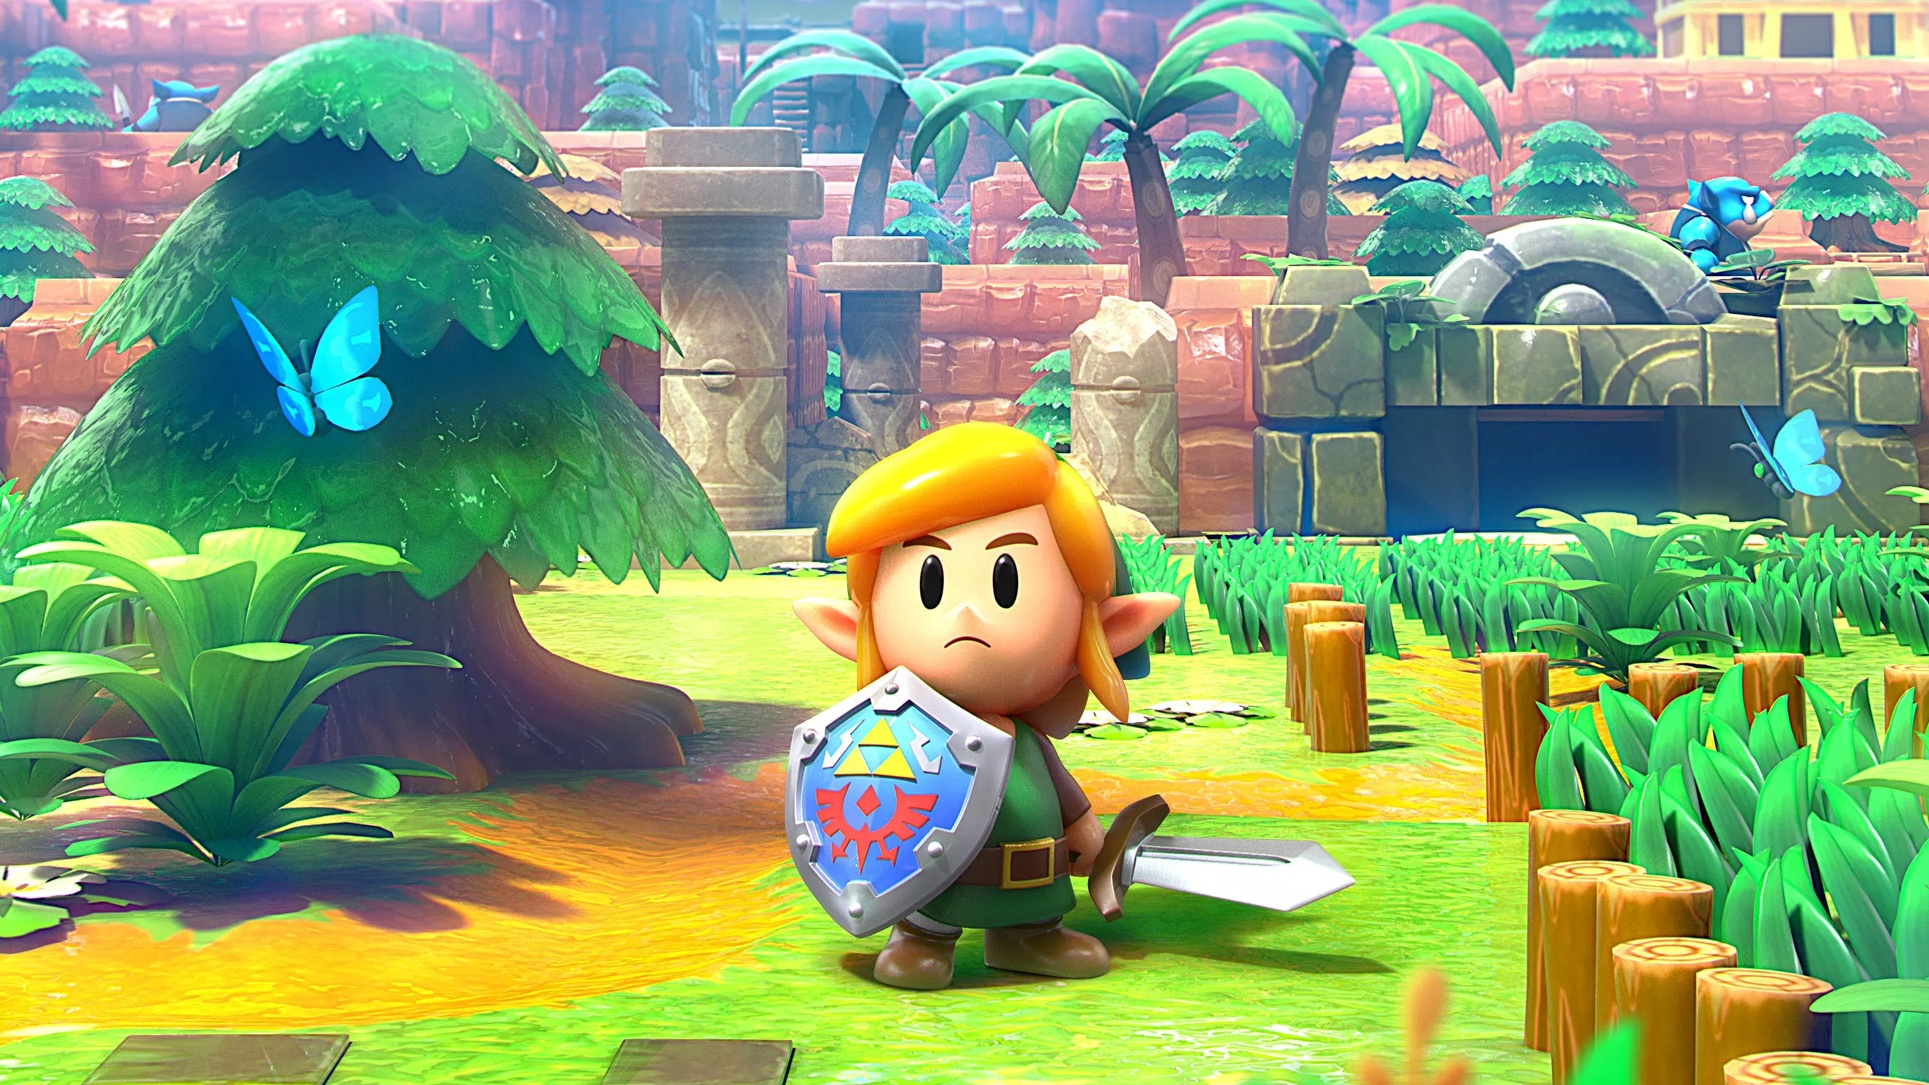 Ps3 Animated Wallpaper Link S Awakening Fait Le Point Avant Sa Sortie Sur Switch